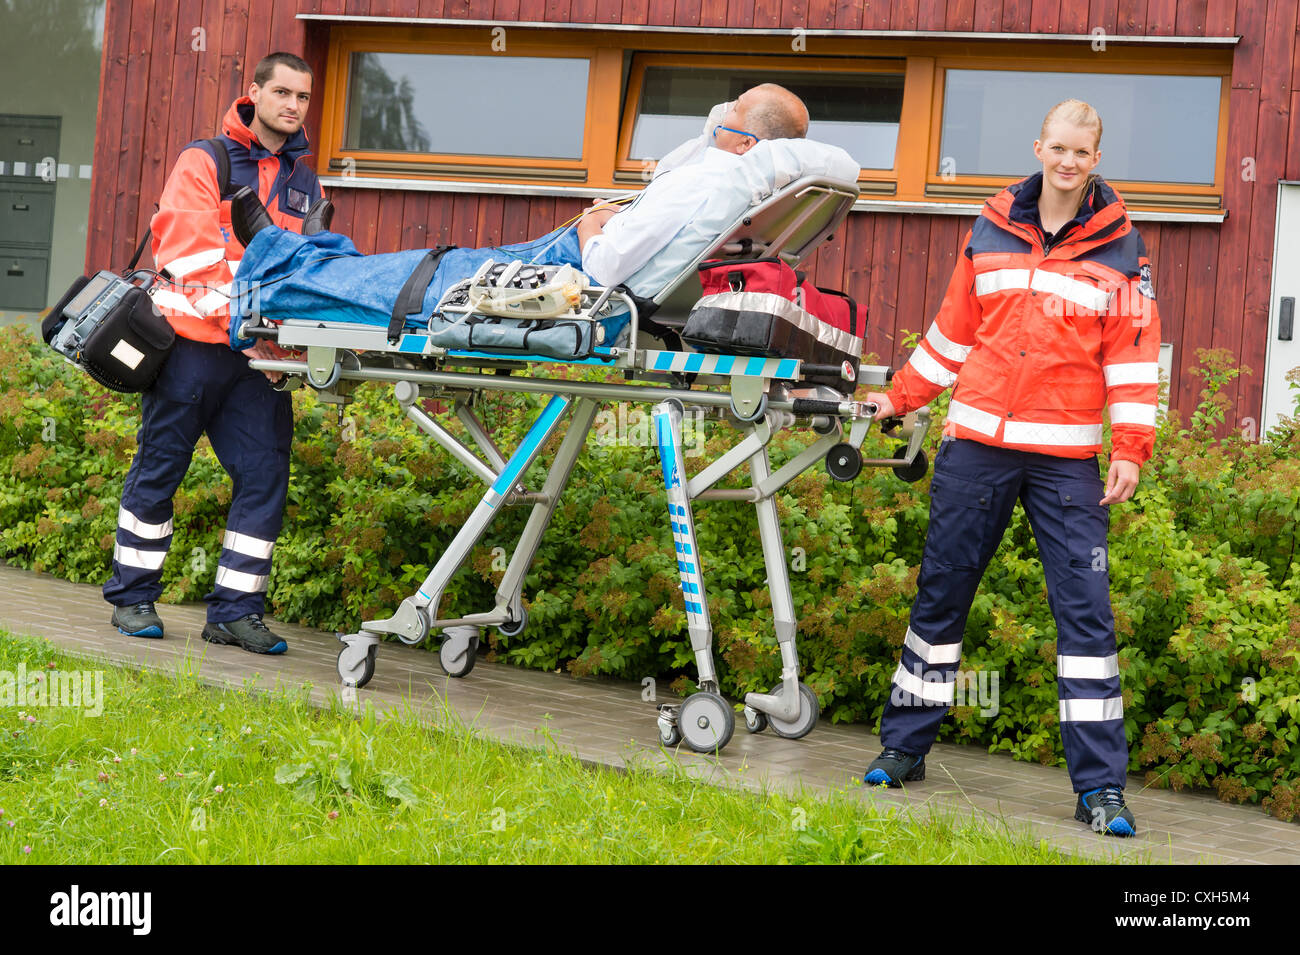 Paramedics with patient on emergency stretcher ambulance aid woman man - Stock Image